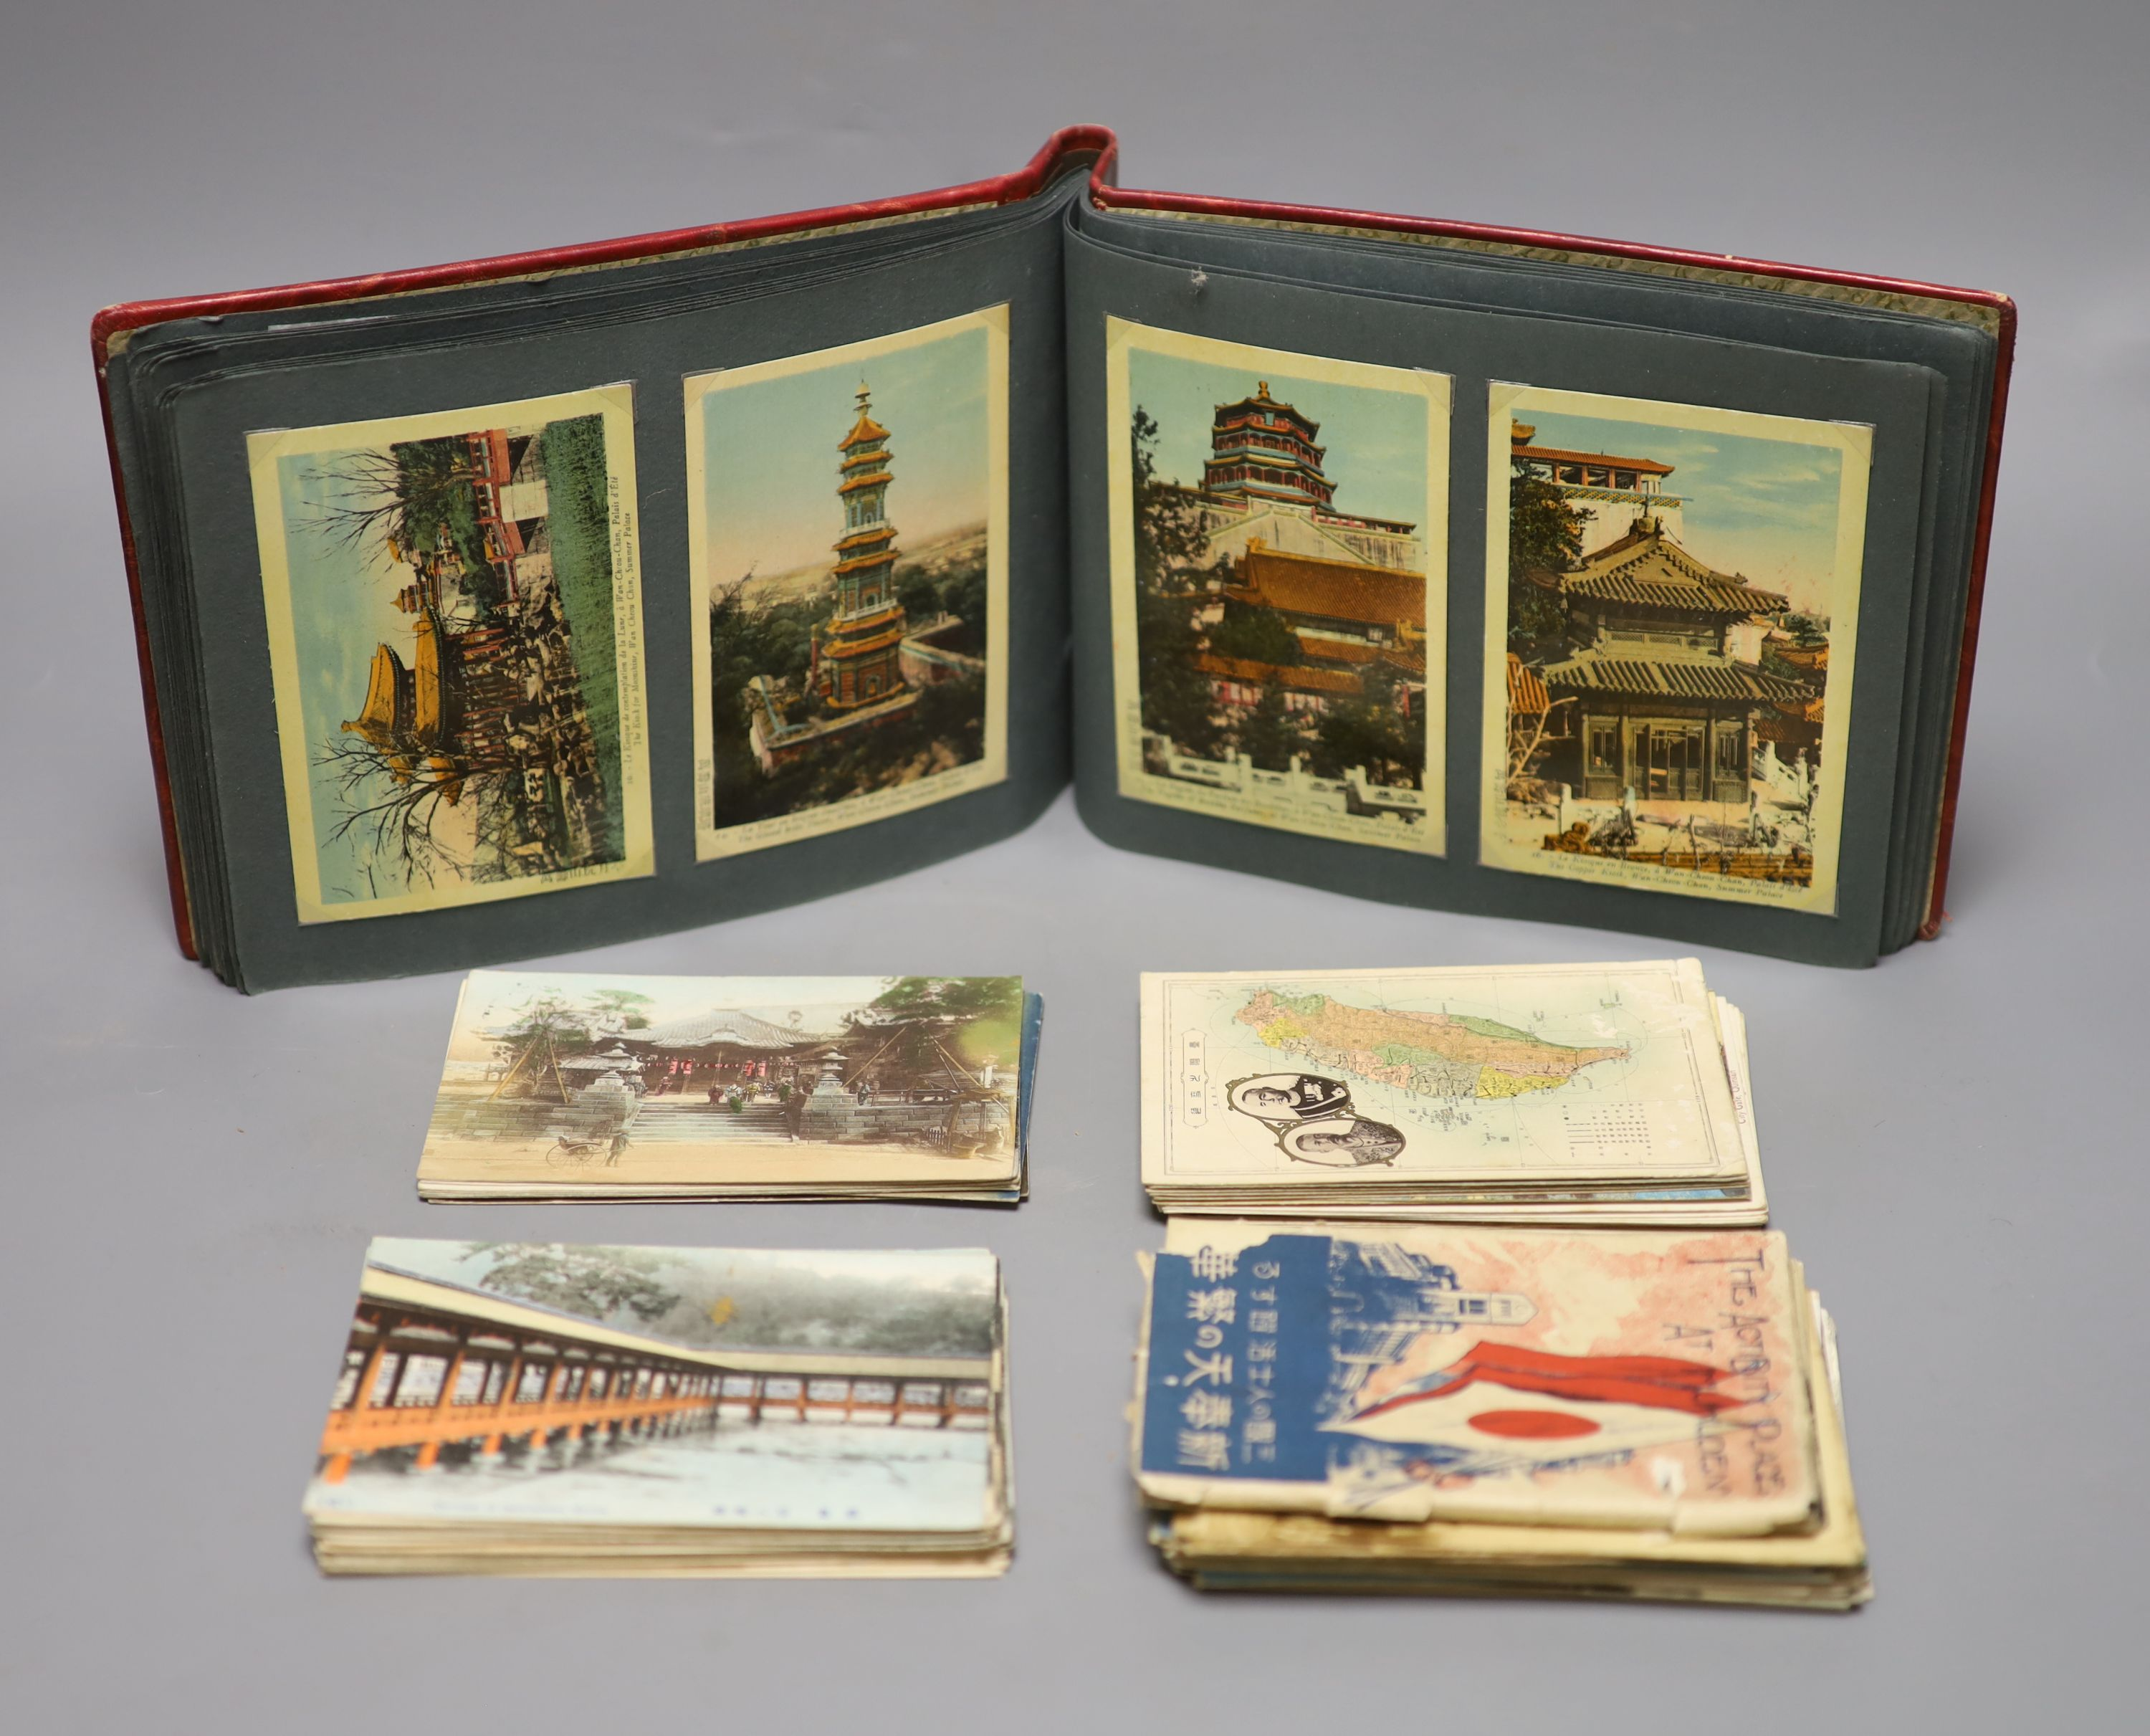 China, Japan and S.E Asia, early 20th century - an album of postcards, including views of the - Image 3 of 6